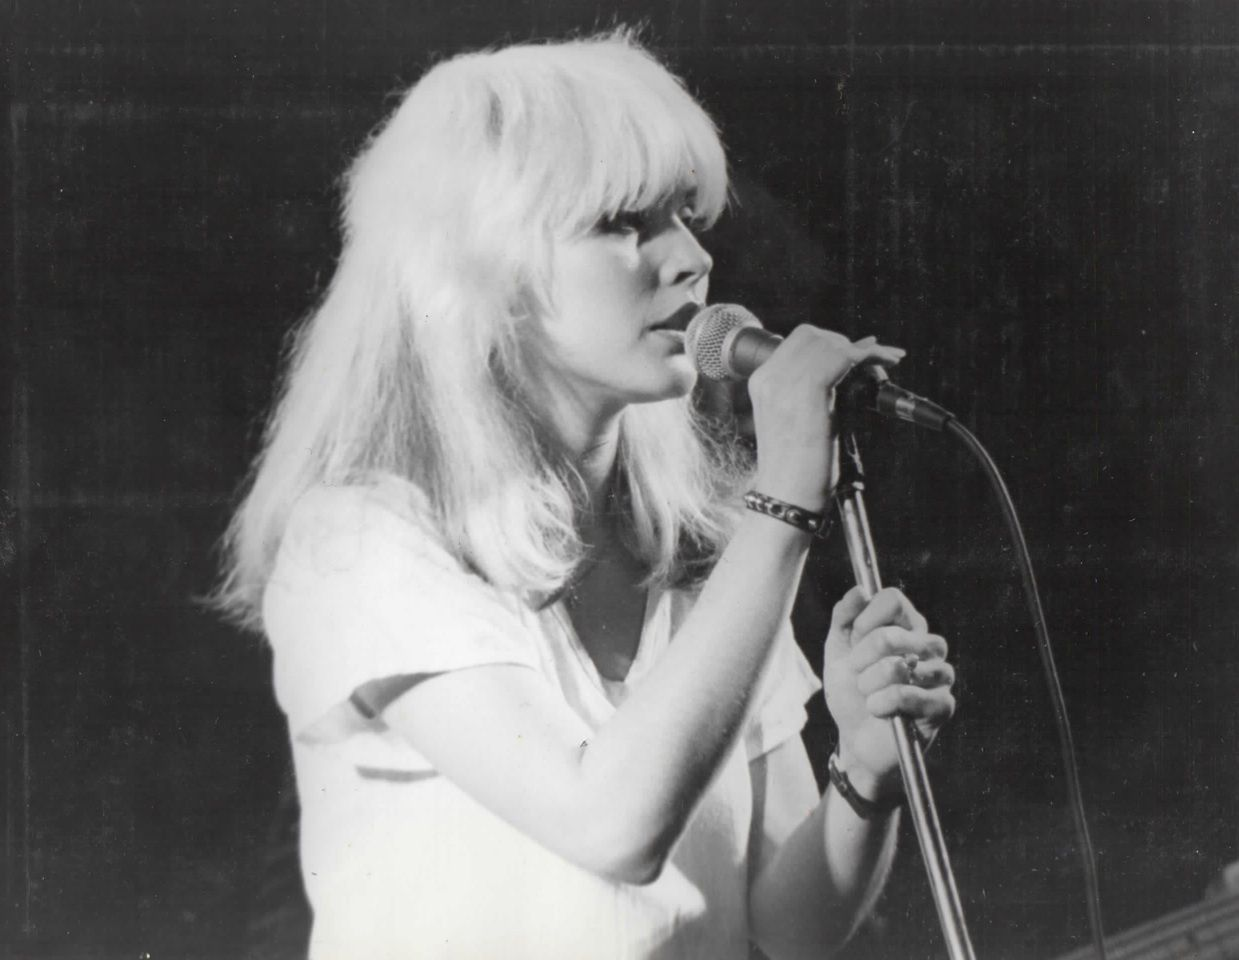 Debbie Harry and Blondie, 1977 - live at The Roundhouse - London (UK)